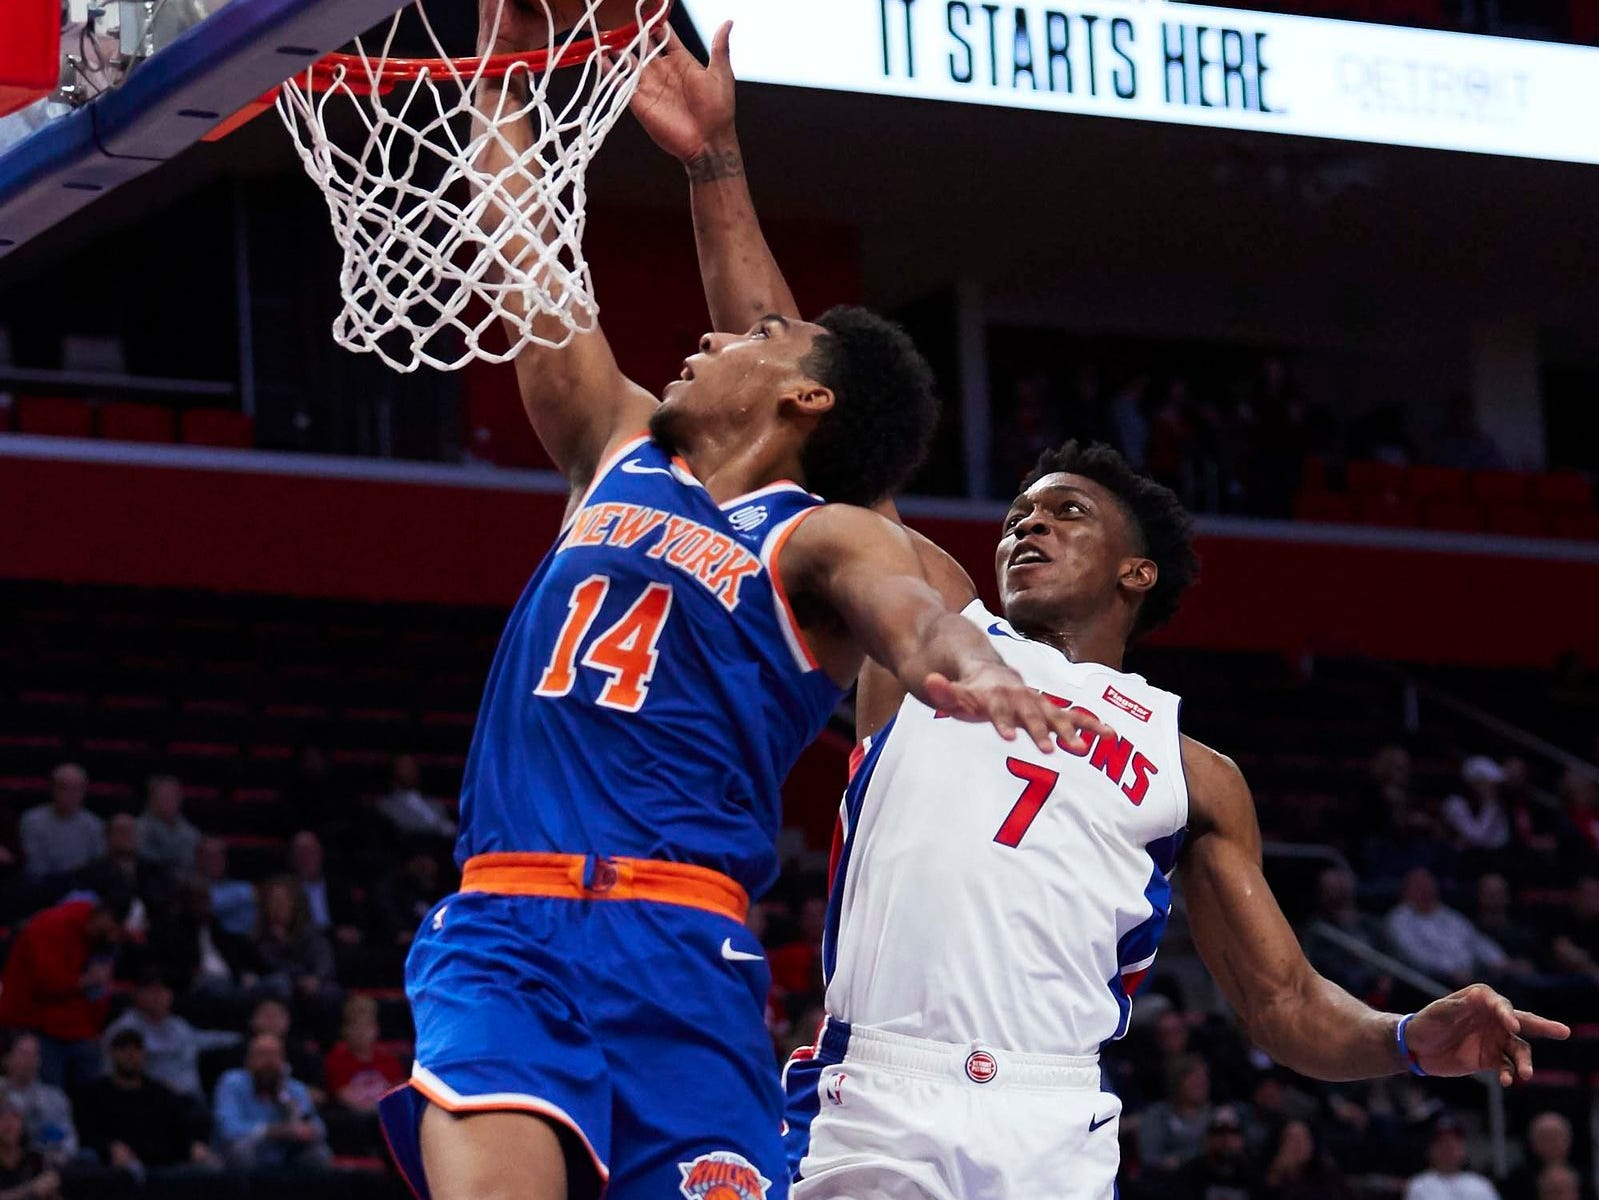 Detroit Pistons forward Stanley Johnson (7) blocks a shot by New York Knicks guard Allonzo Trier (14) in the second half at Little Caesars Arena.